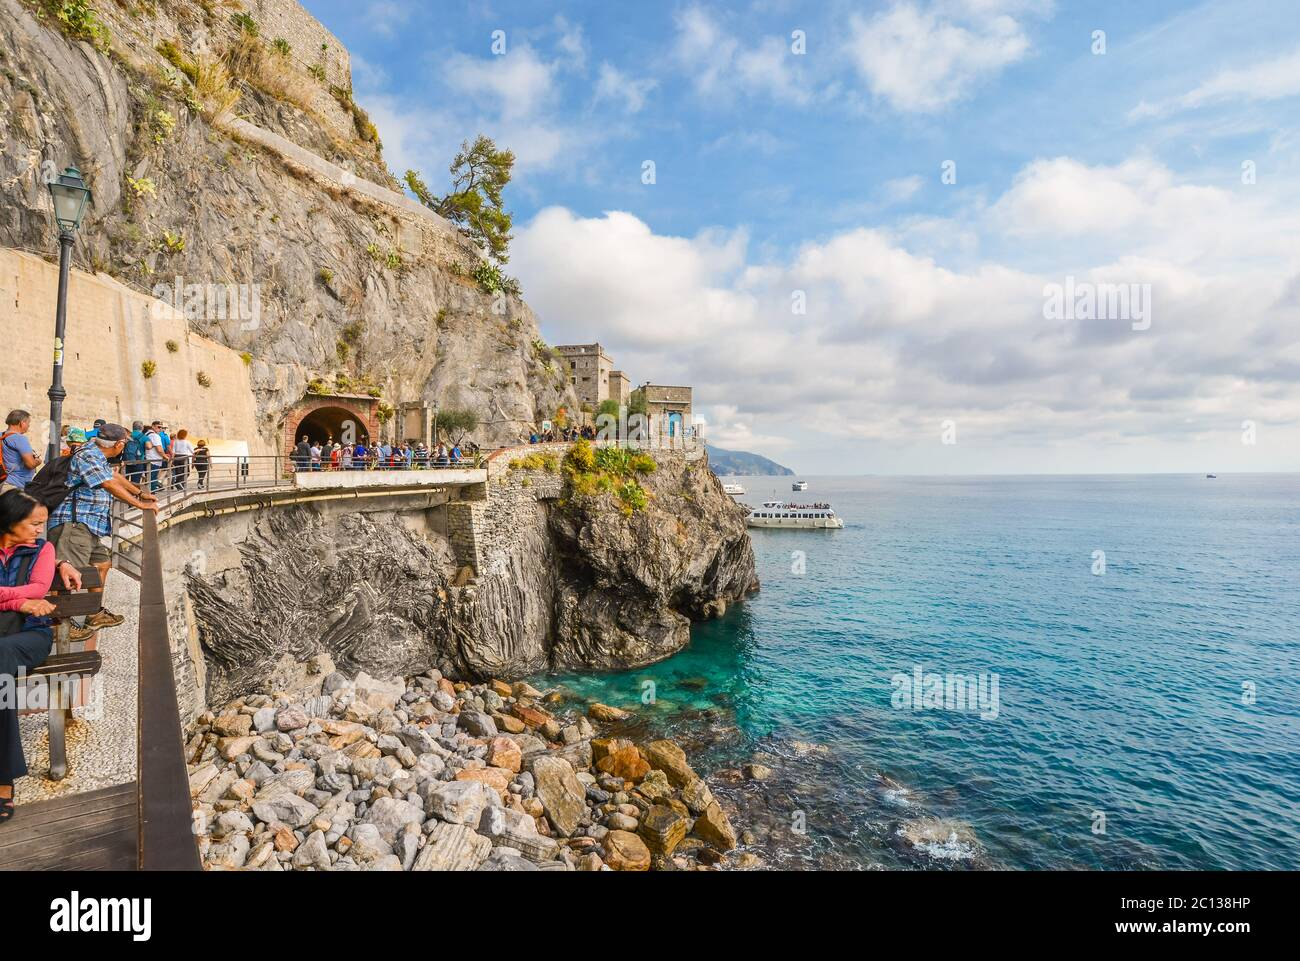 Tourists walk the path and enter the tunnel on the coast of Monterosso al Mare, Cinque Terre Italy, with the Monterosso castle in view over the sea Stock Photo